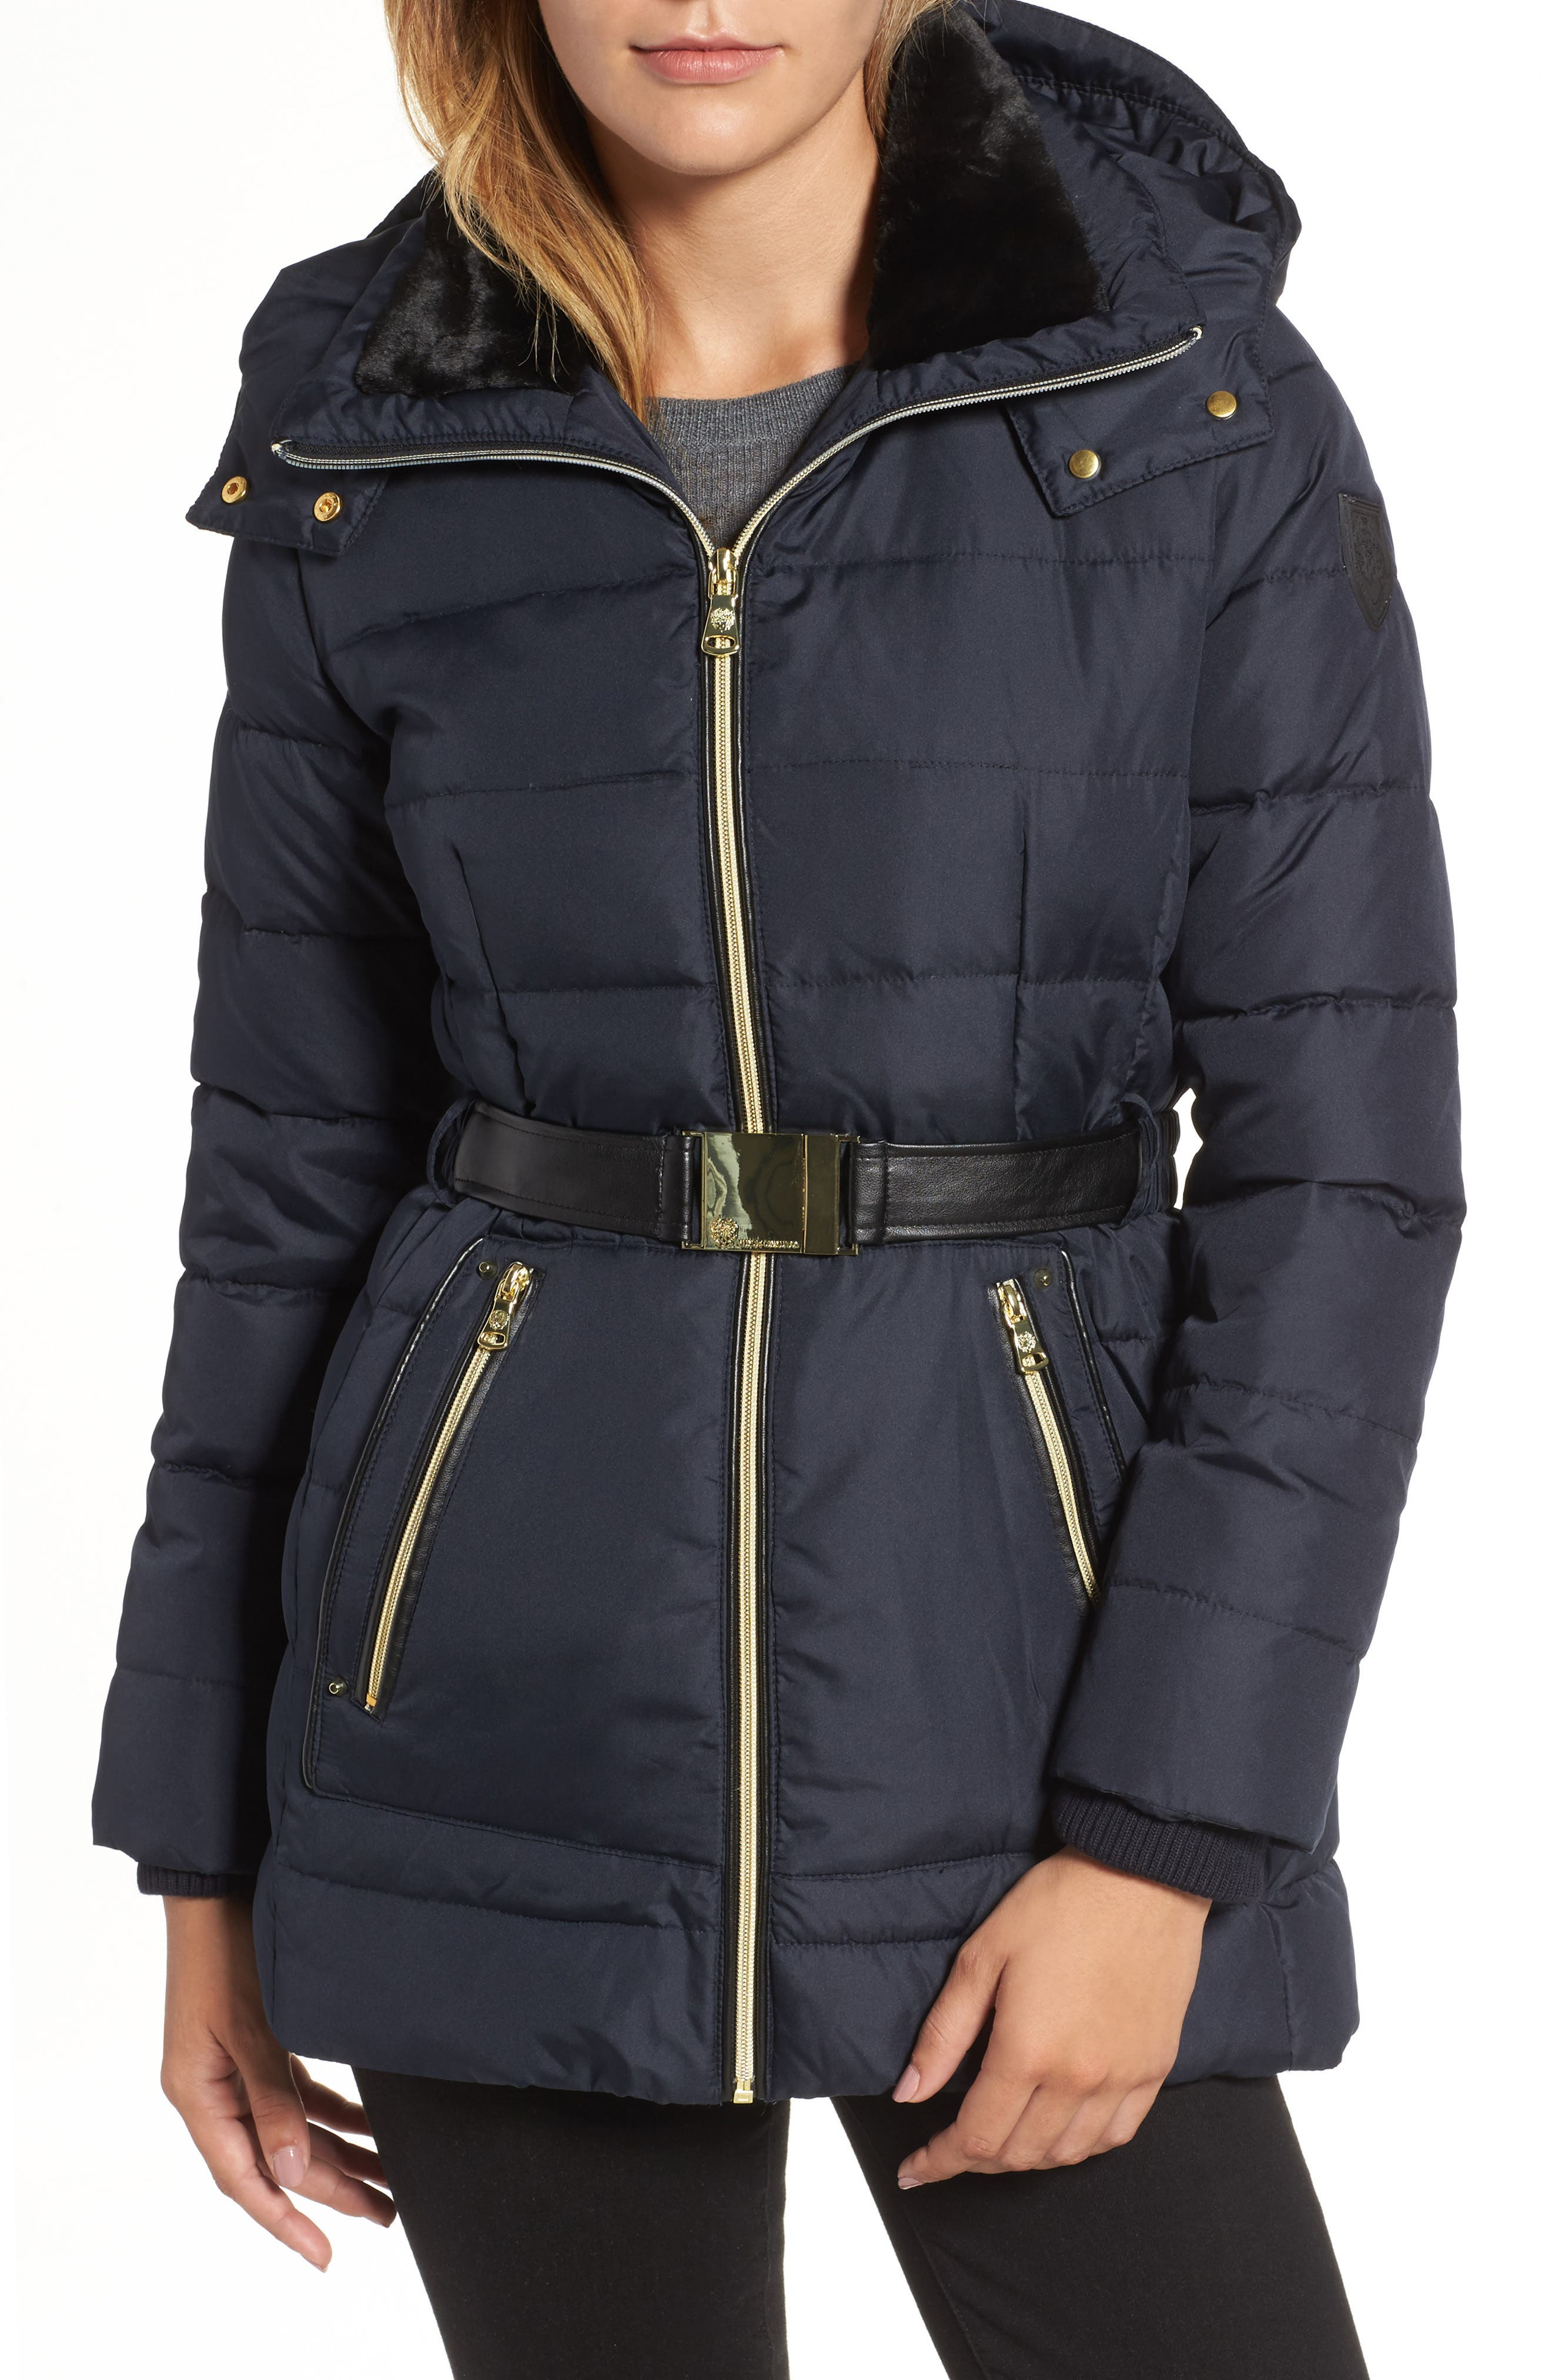 Alternate Image 1 Selected - Vince Camuto Belted Down & Feather Jacket with Faux Fur